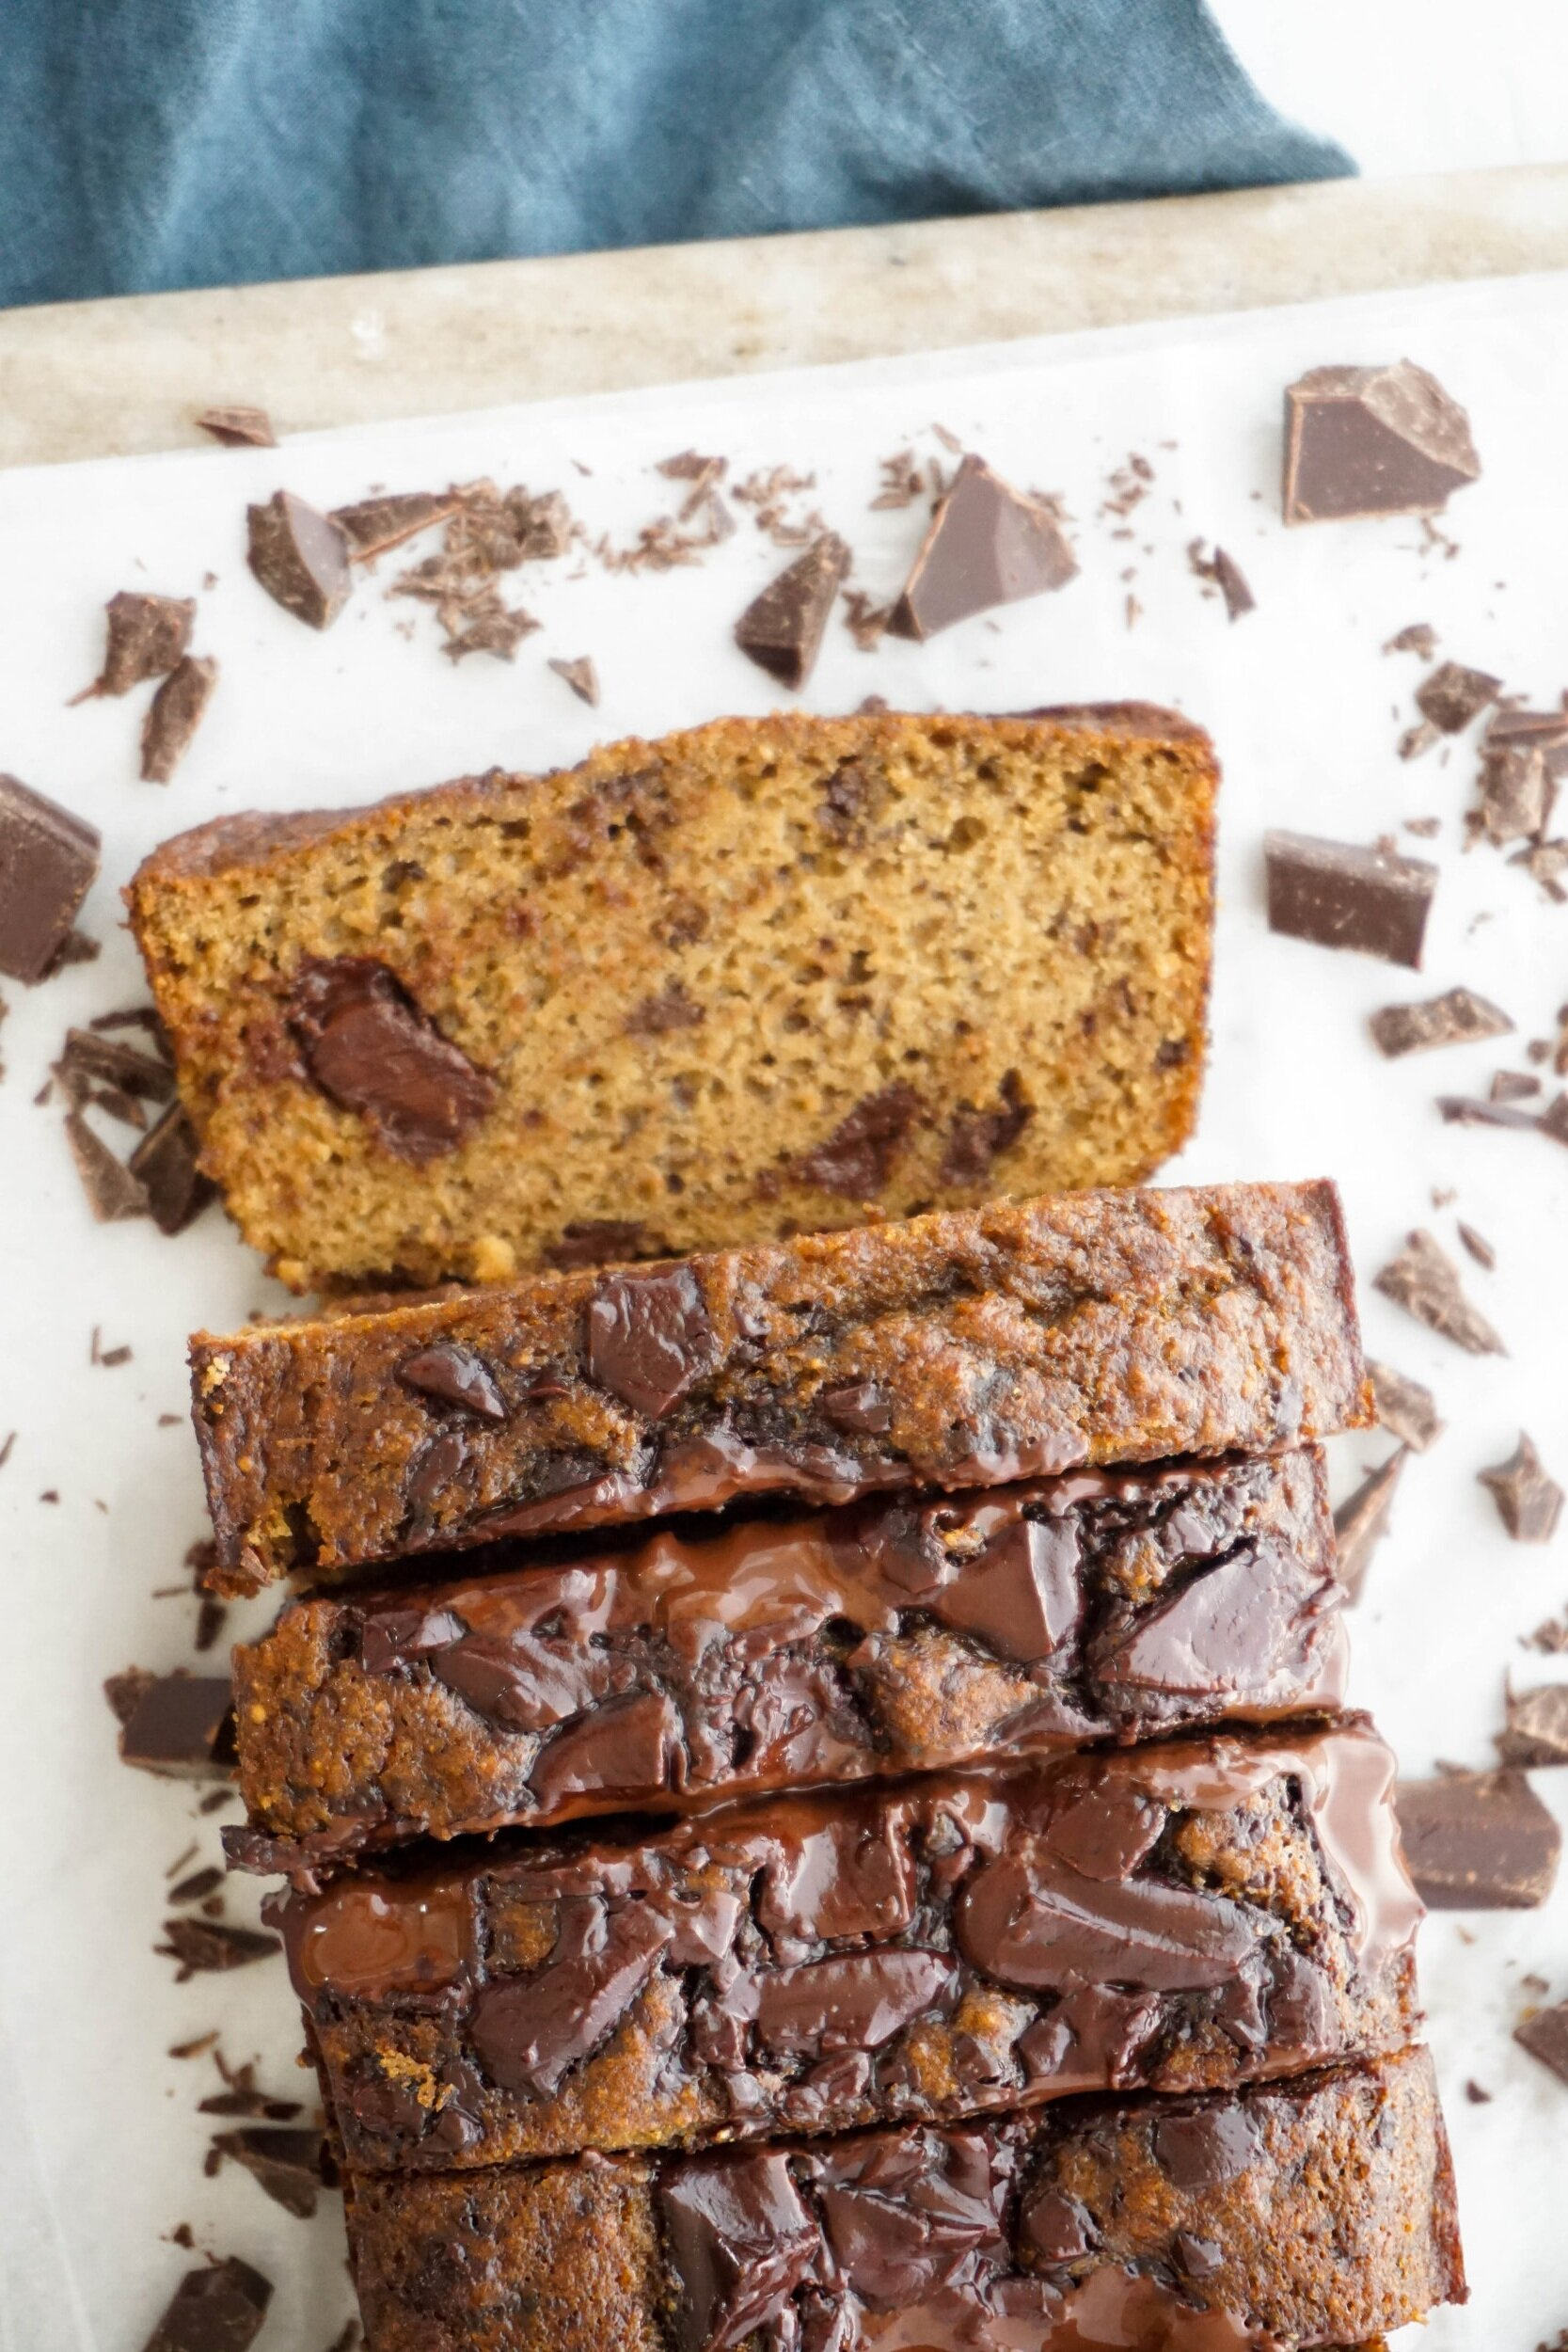 Vanilla Almond Chocolate Chip Banana Bread (Grain-free, Dairy-free)